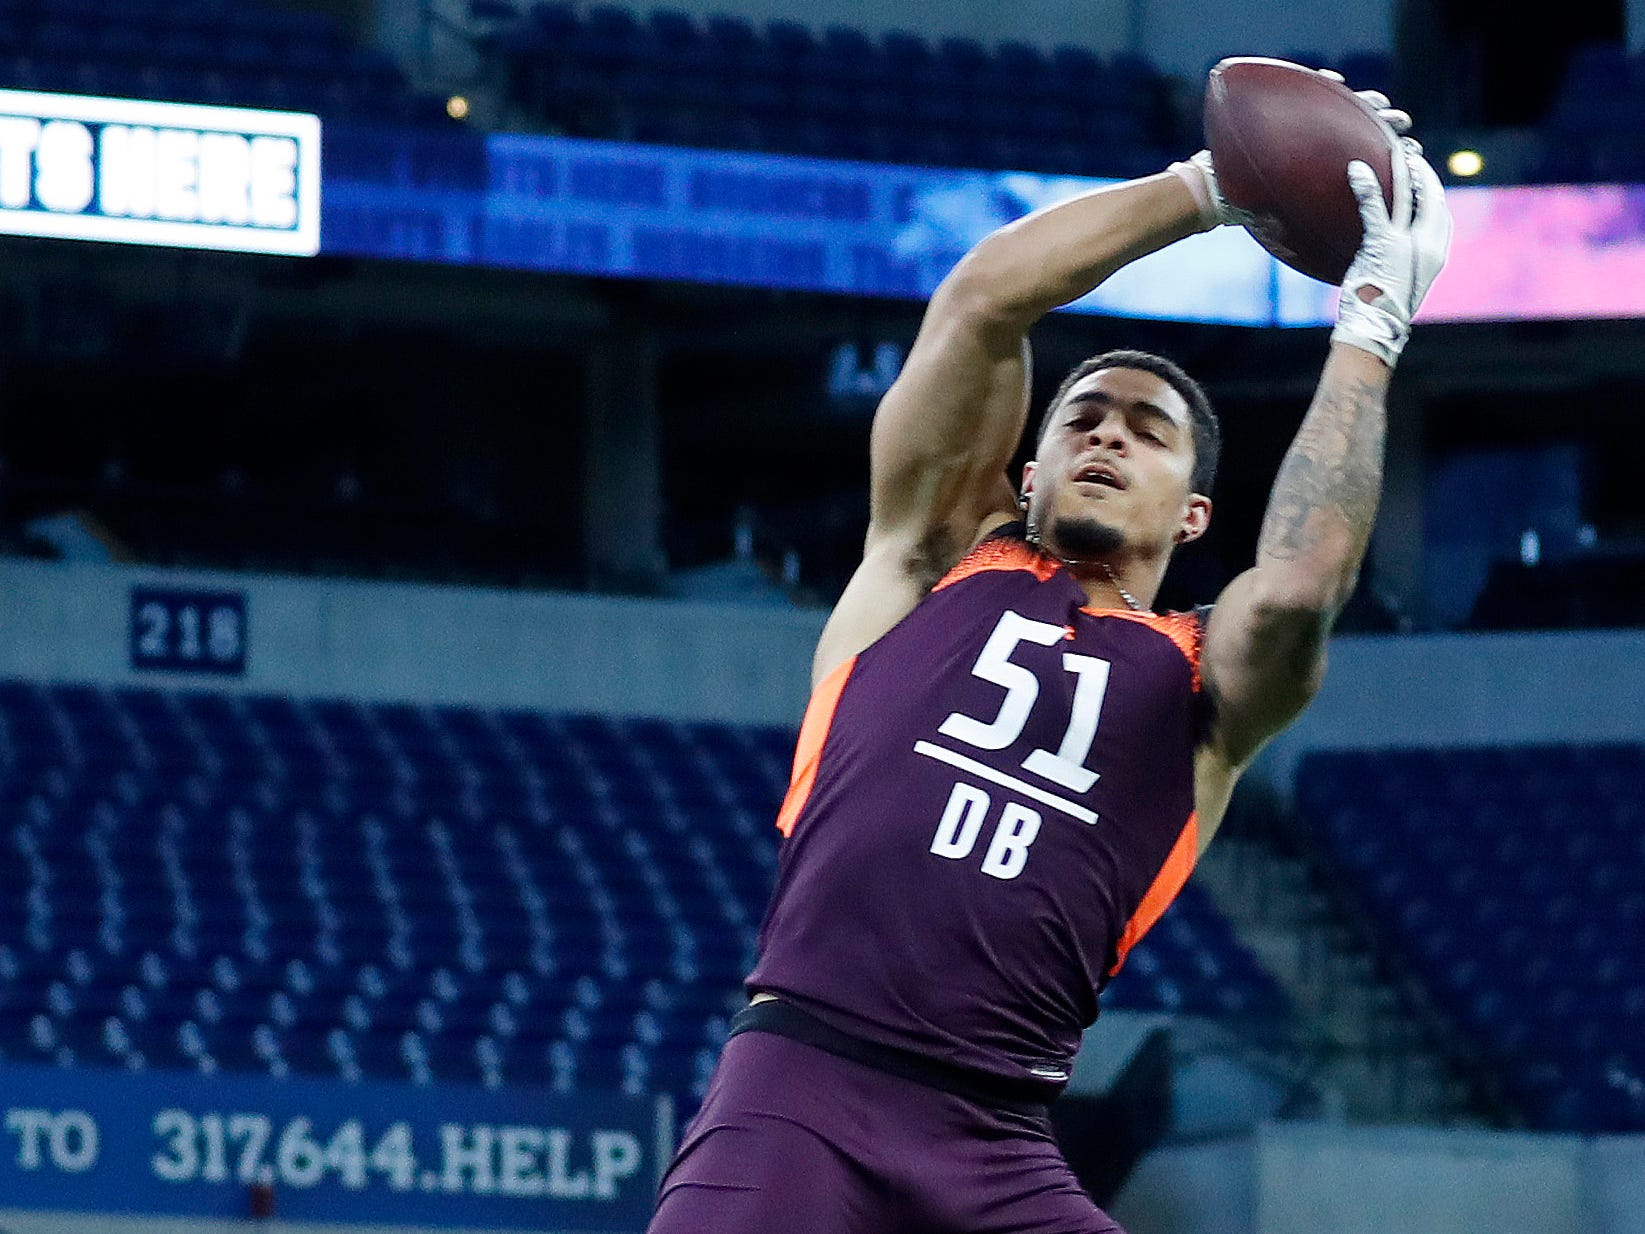 Iowa defensive back Amani Hooker goes through the workout drills during the 2019 NFL Combine at Lucas Oil Stadium.